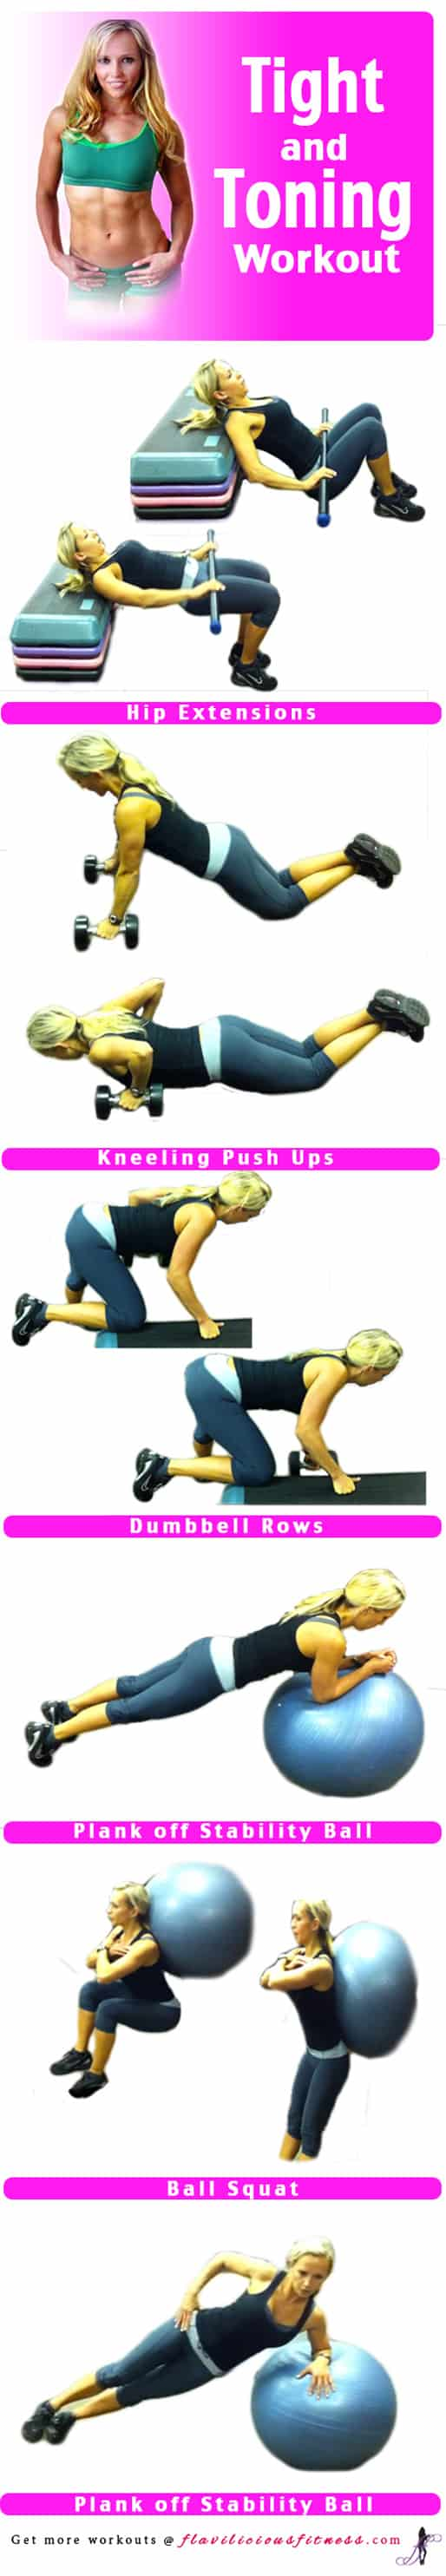 Tight and Toning Workout